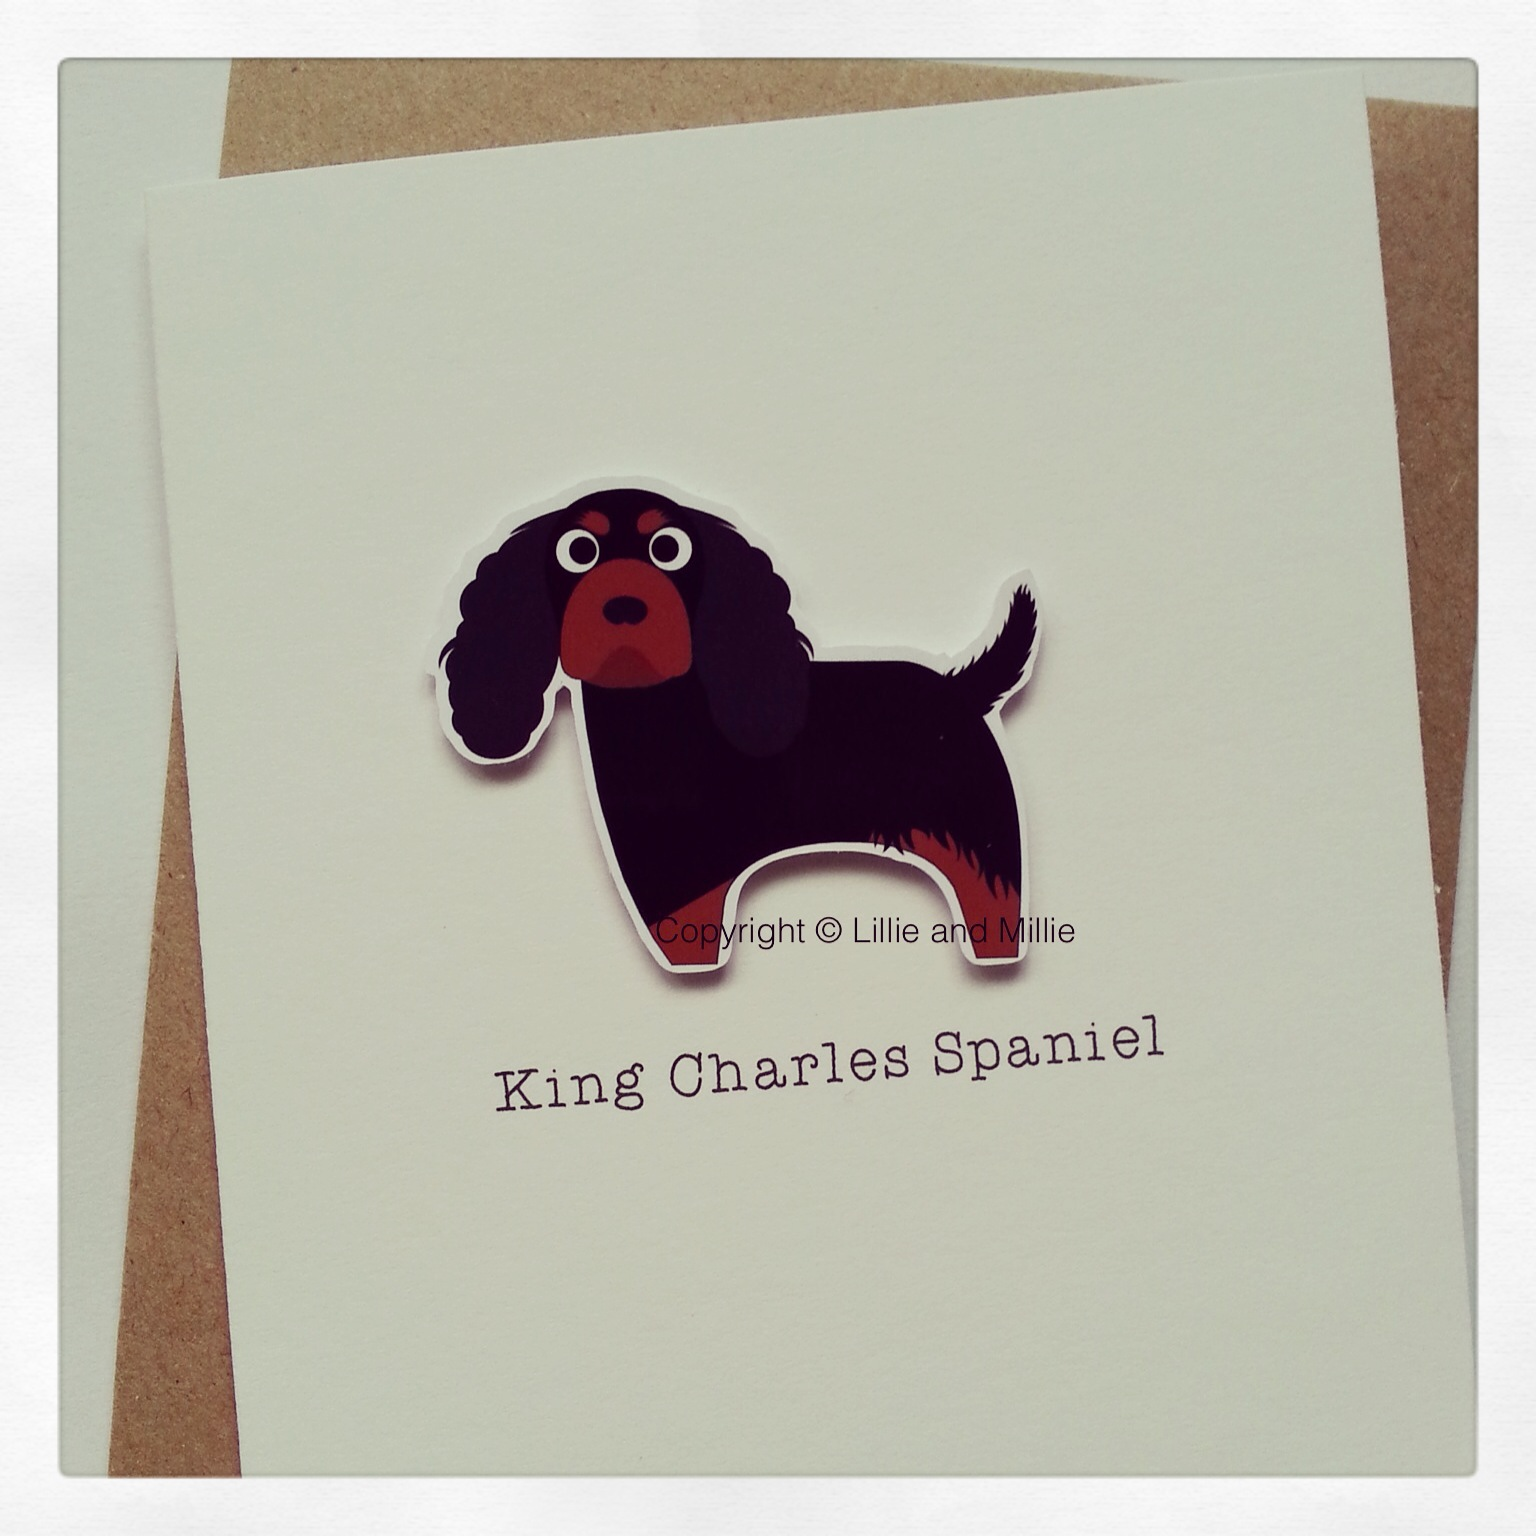 Cute and Cuddly Black and Tan King Charles Spaniel Greetings Card